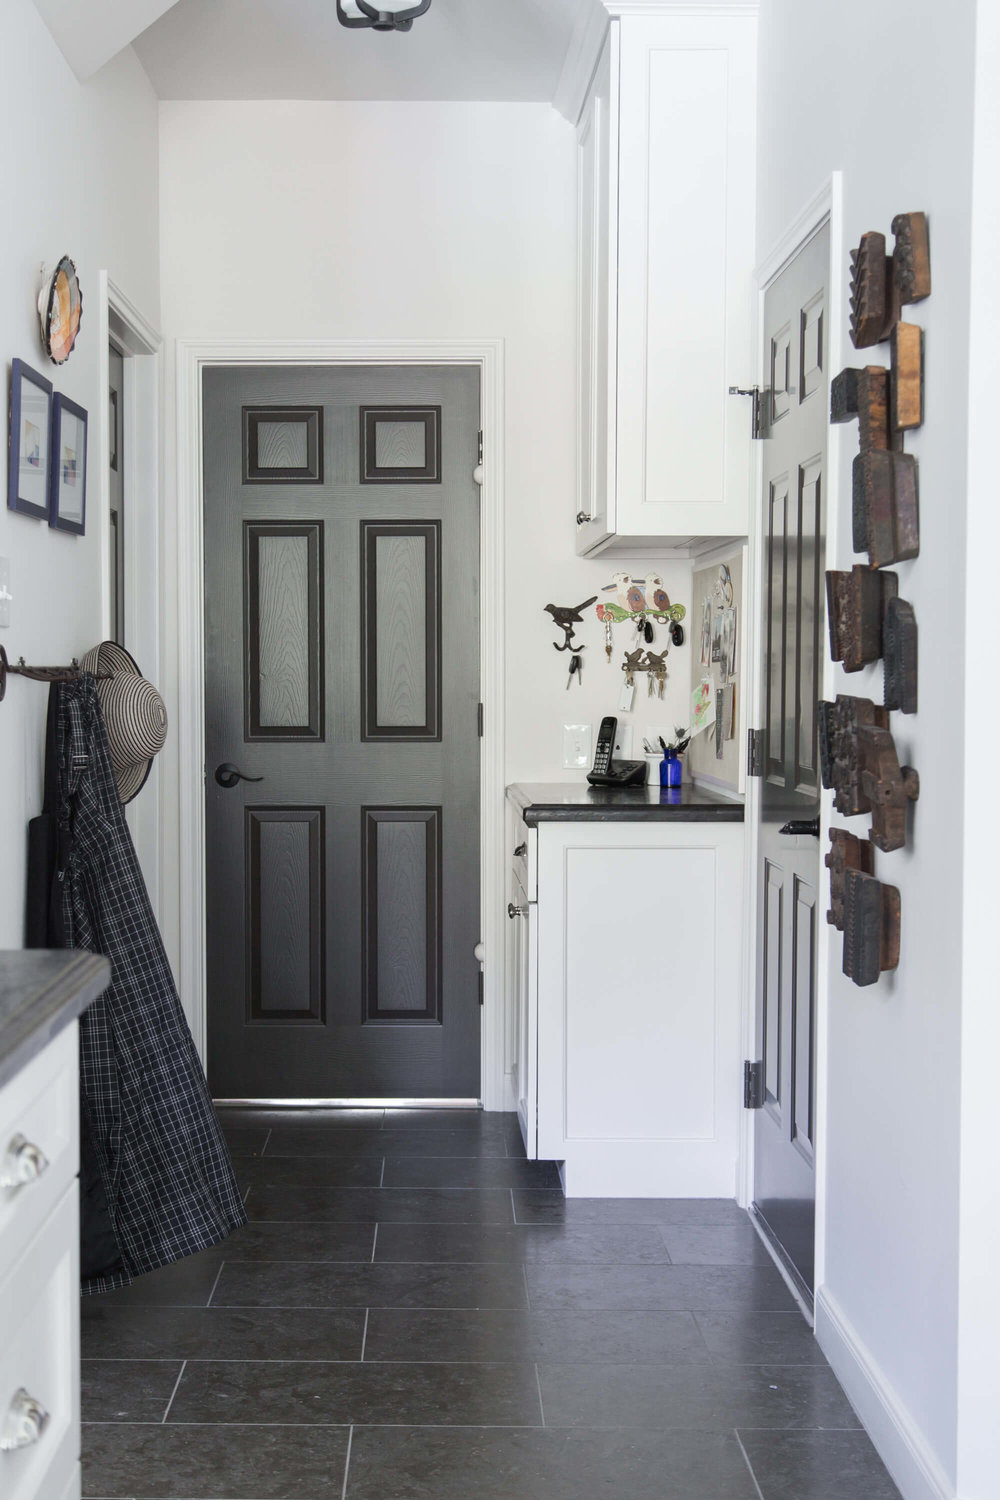 Before and After Kitchen Remodel, Mud room - Carla Aston, Designer - Tori Aston, Photographer